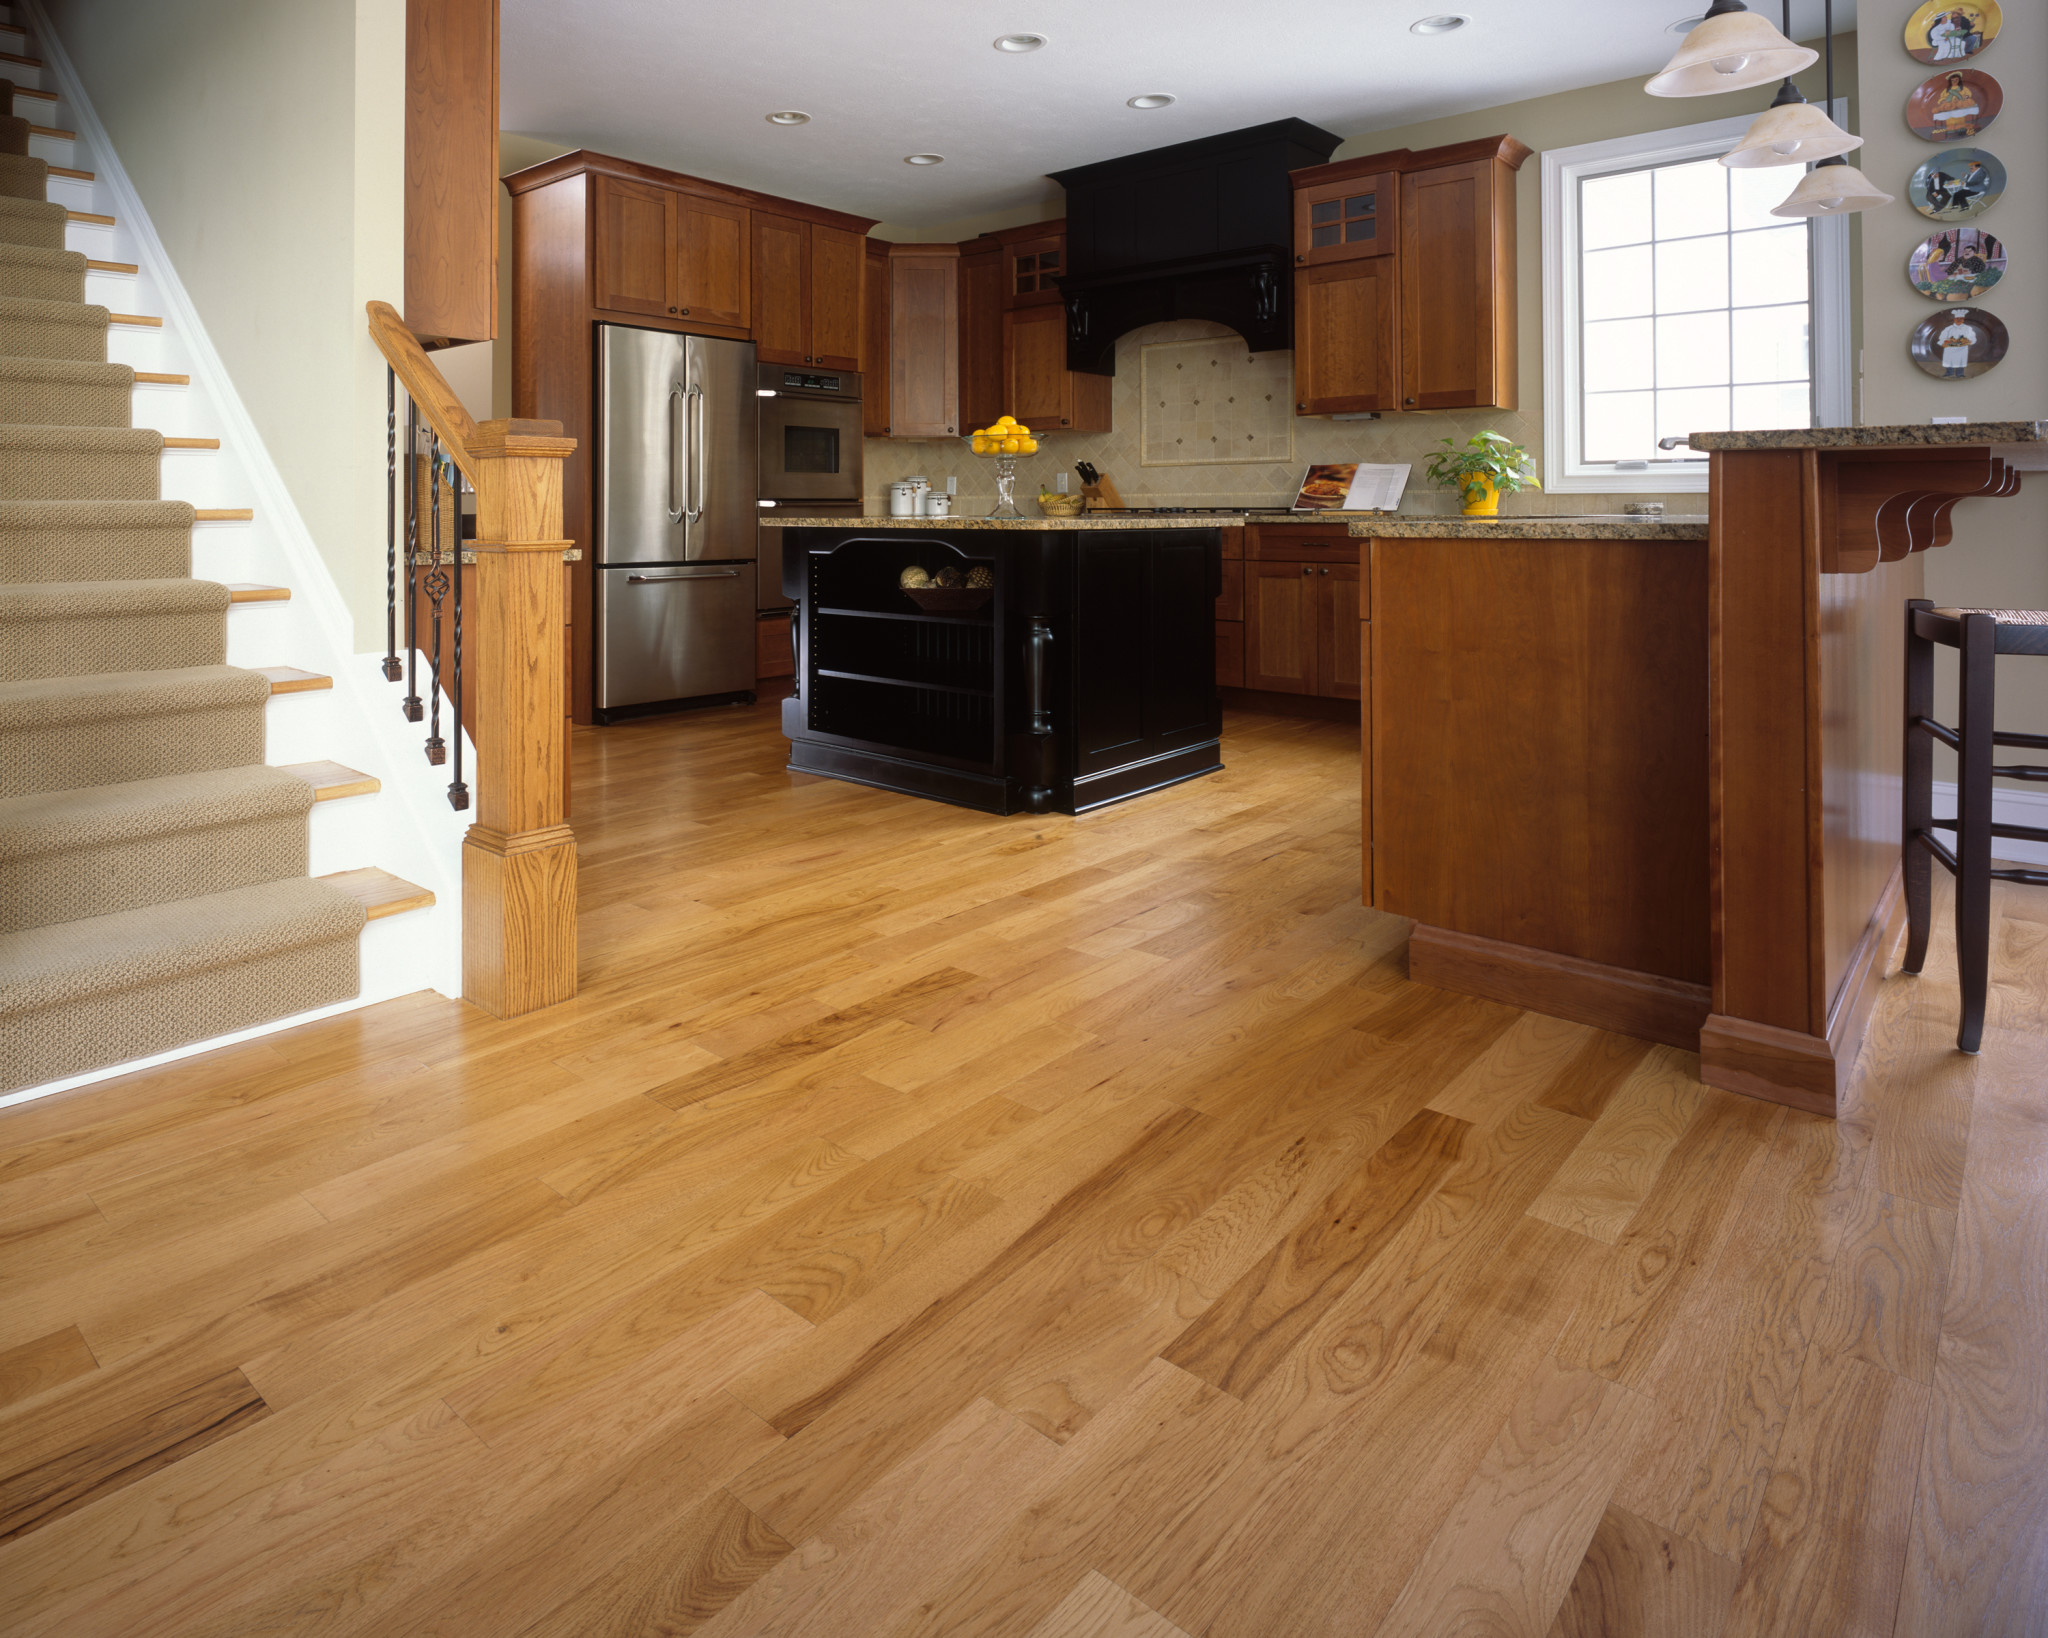 Wood Floors Tile Linoleum Jmarvinhandyman